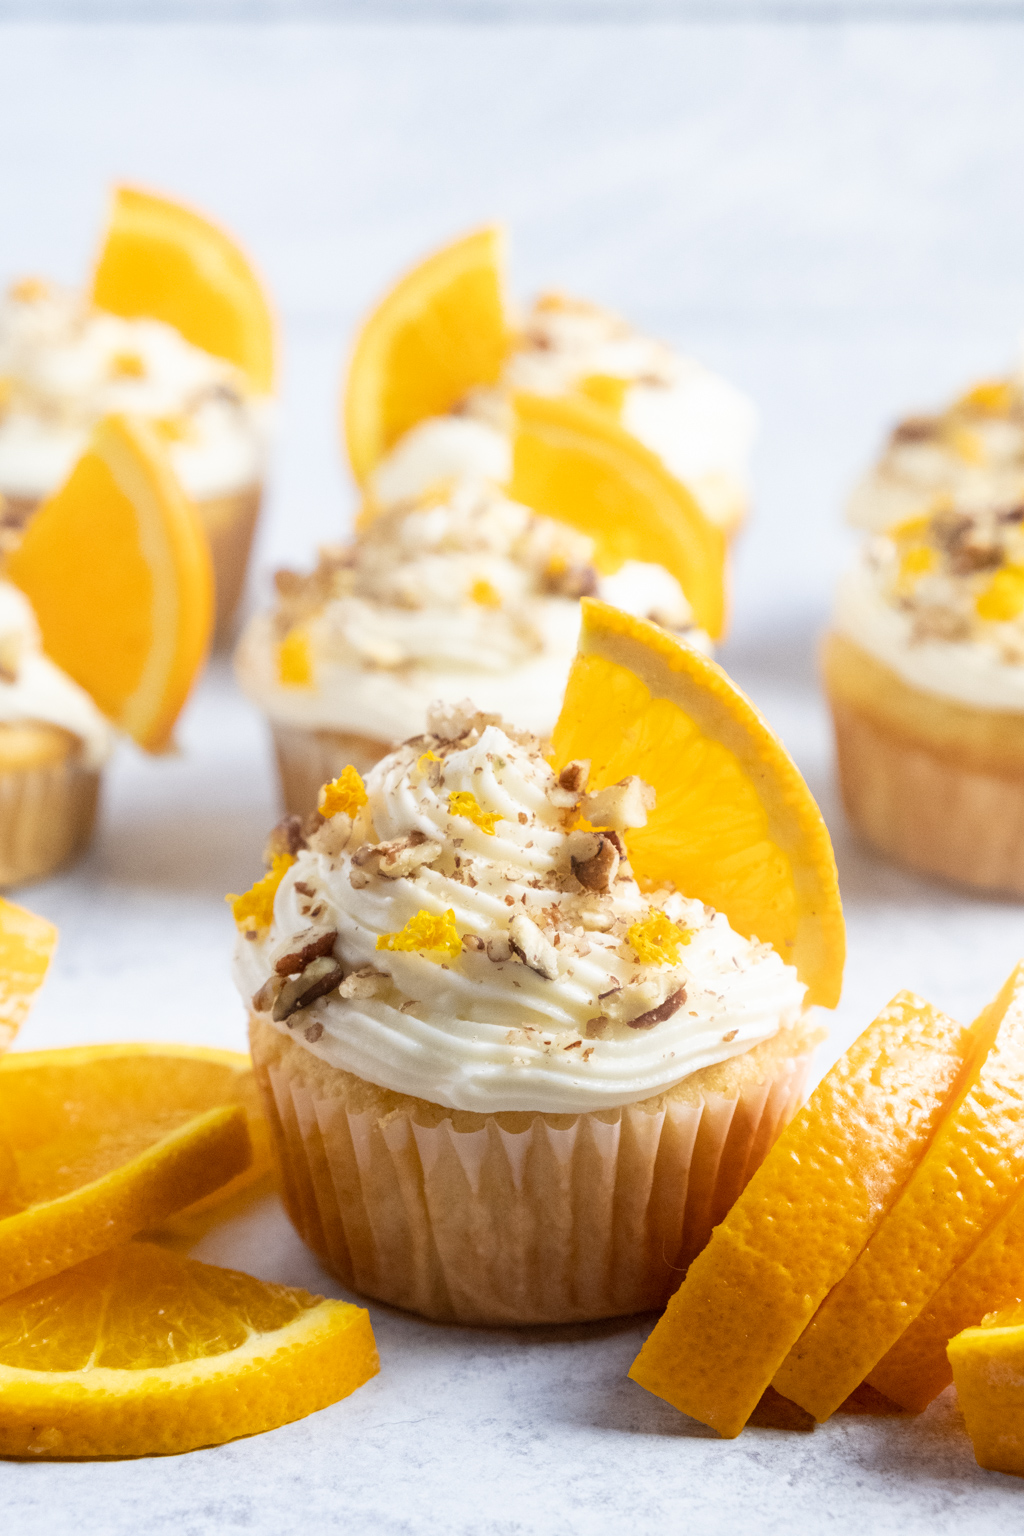 pineapple orange cupcakes with cream cheese frosting